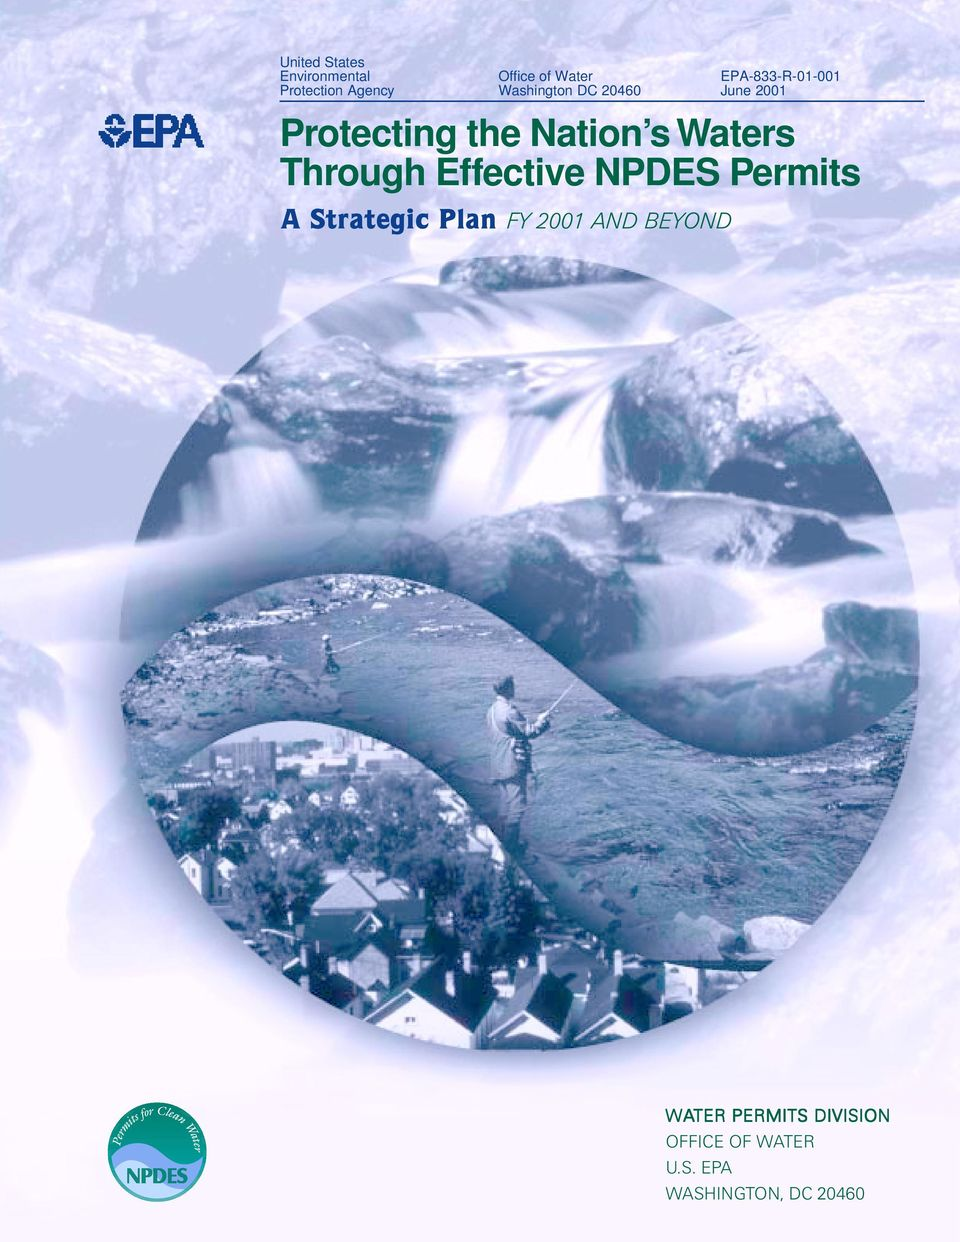 NPDES Permits A Strategic Plan FY 2001 AND BEYOND EPA-833-R-01-001